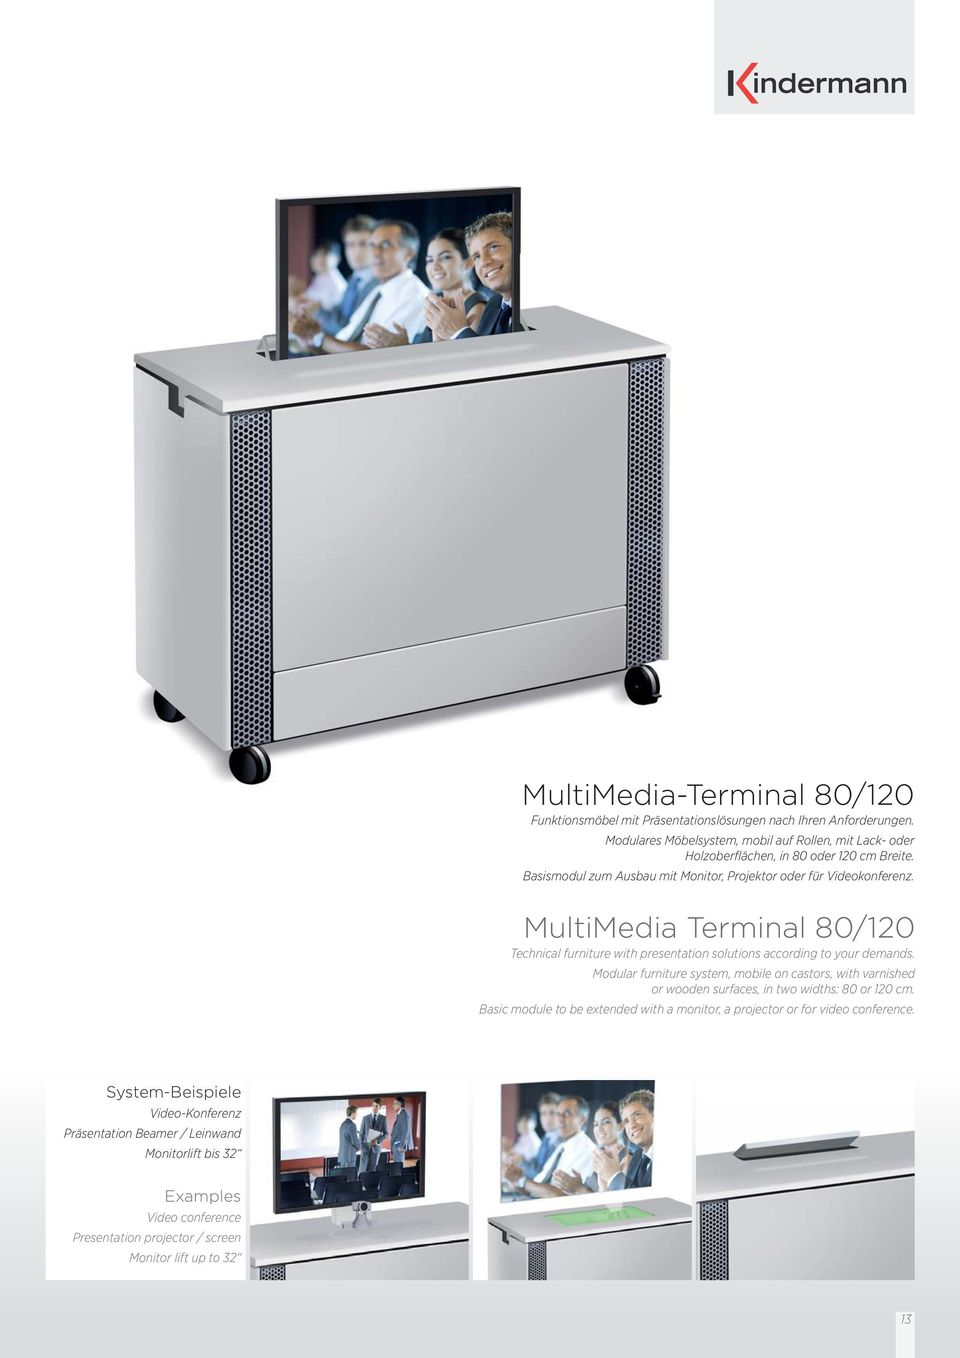 MultiMedia Terminal 80/120 Technical furniture with presentation solutions according to your demands.